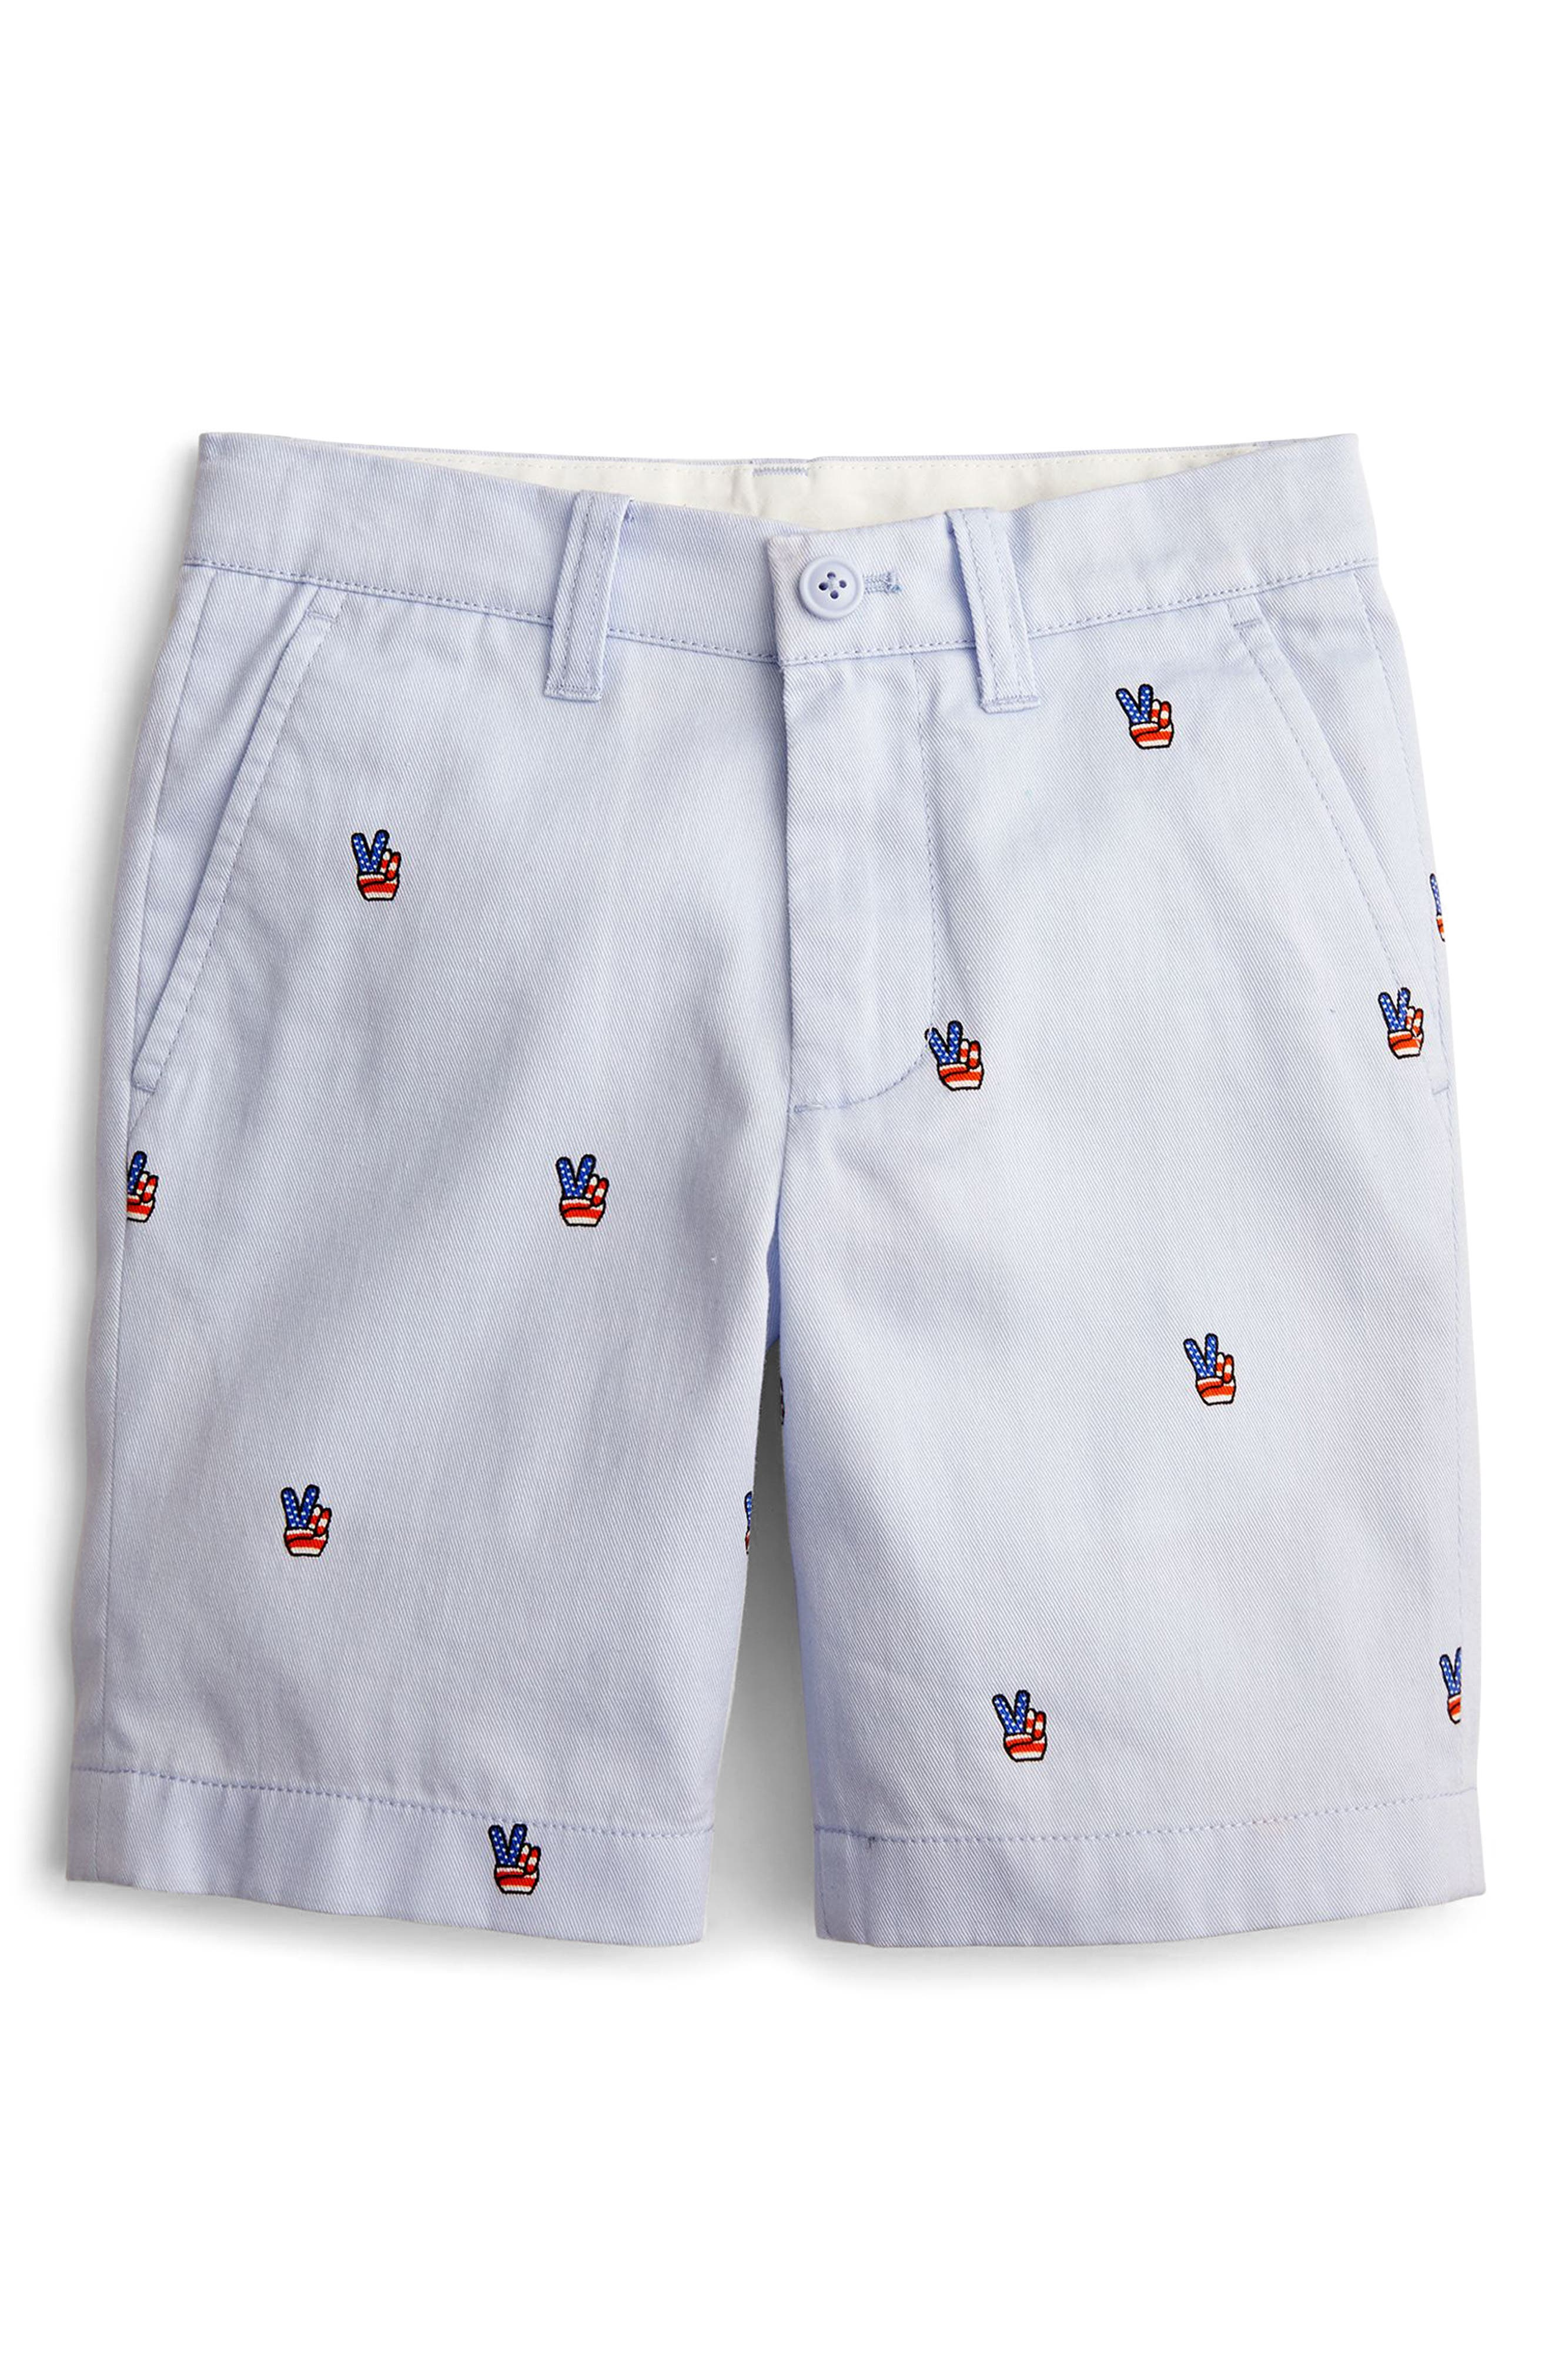 Stanton Peace Sign Shorts,                         Main,                         color, OXFORD BLUE